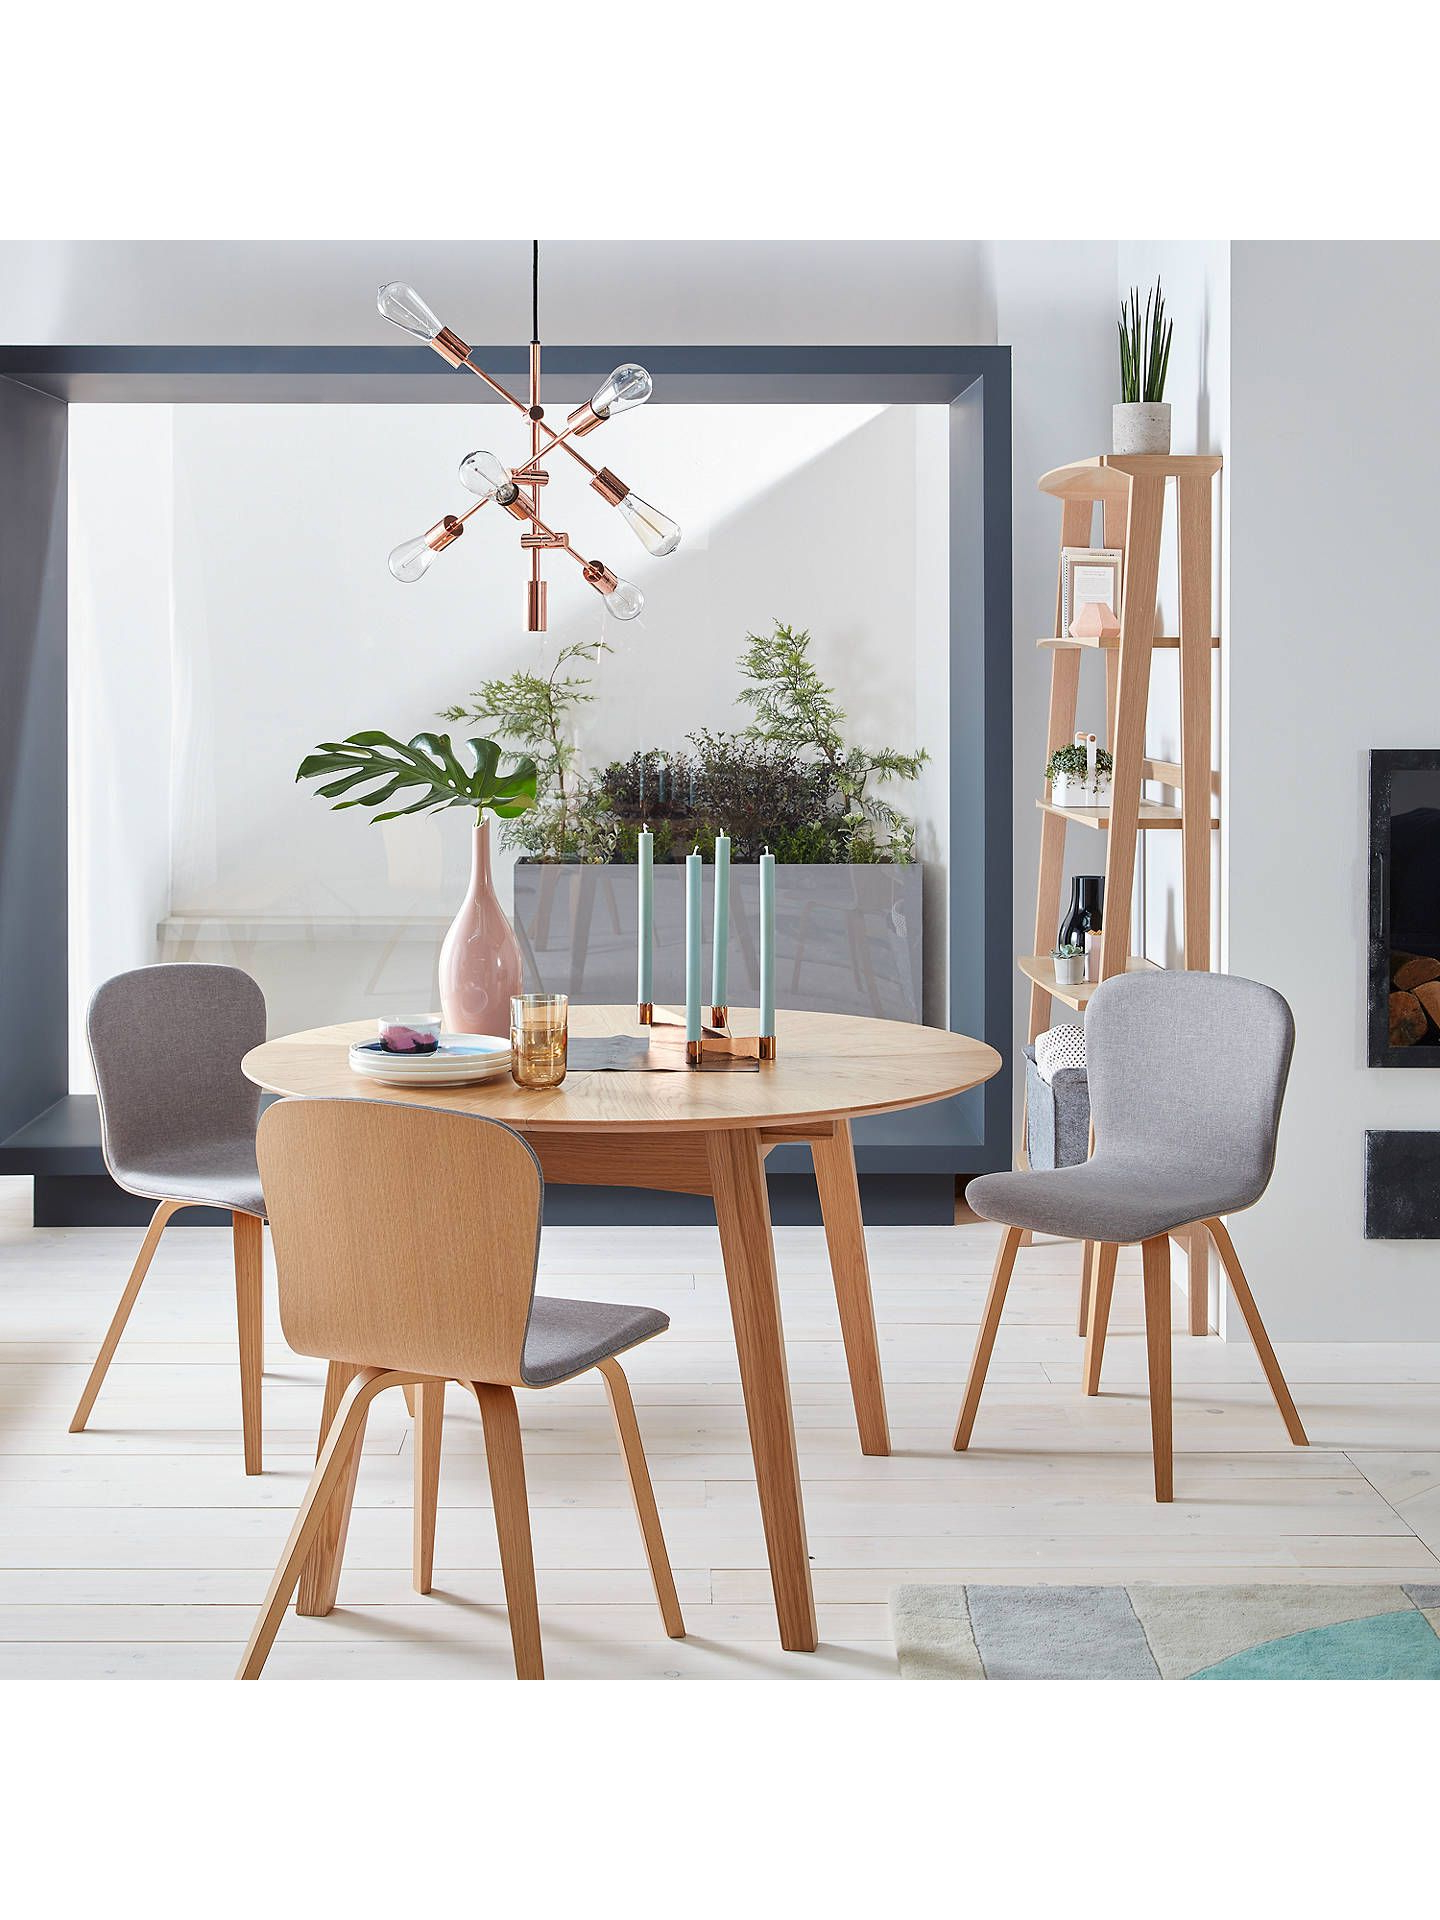 John Lewis & Partners Duhrer 4 6 Seater Extending Round Dining Table Pertaining To Favorite John 4 Piece Dining Sets (View 6 of 25)